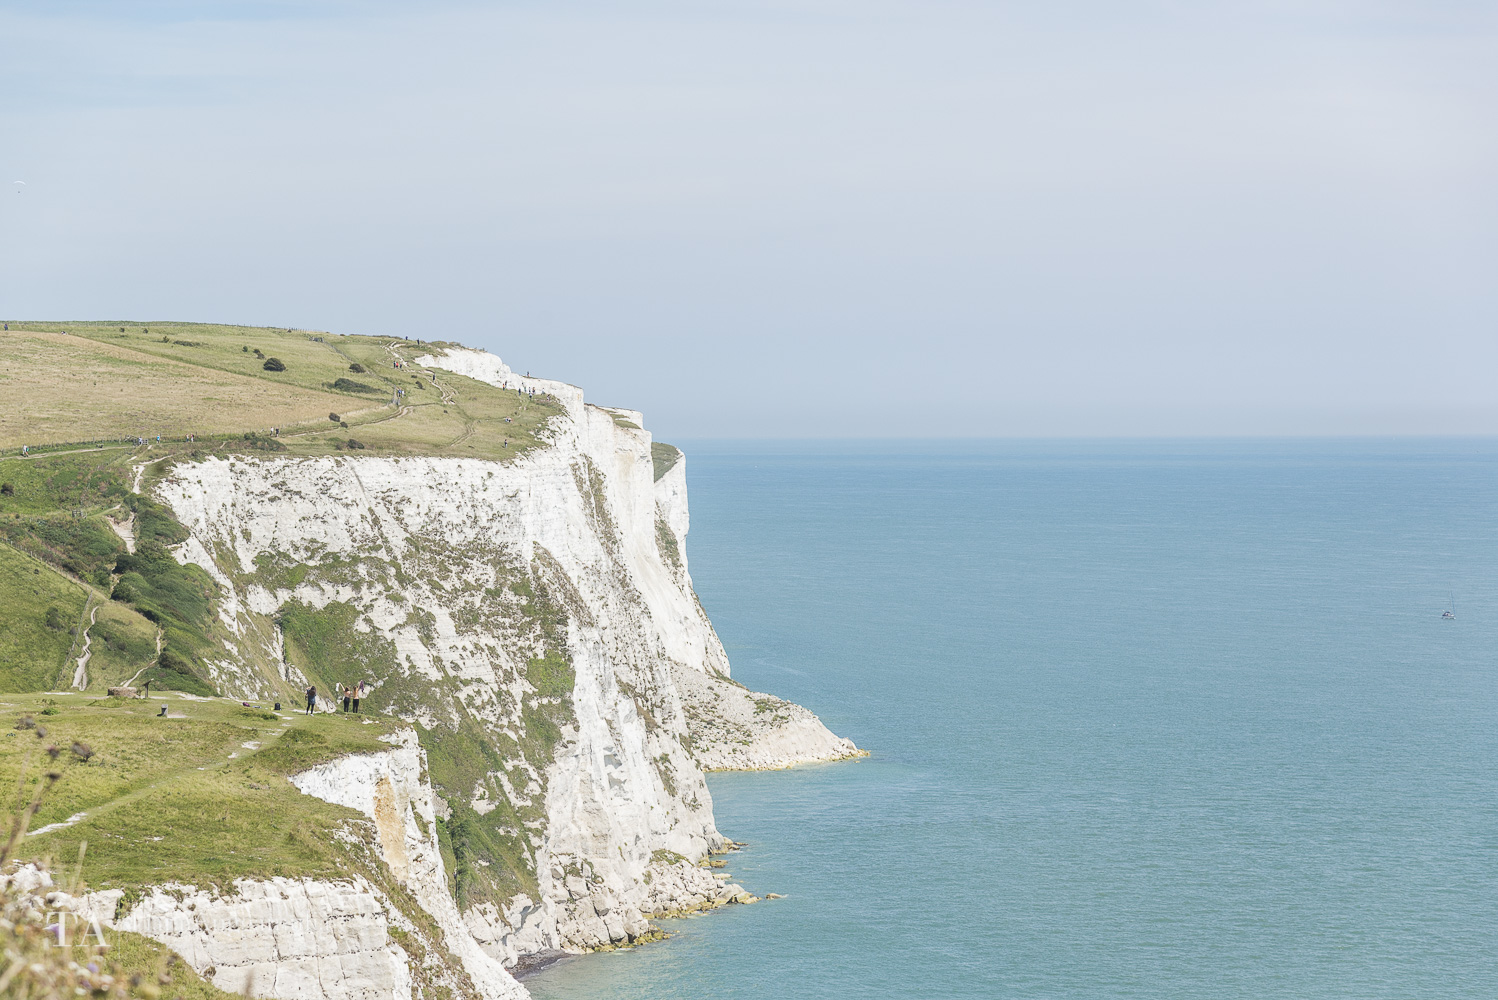 A view towards the white cliffs of Dover.